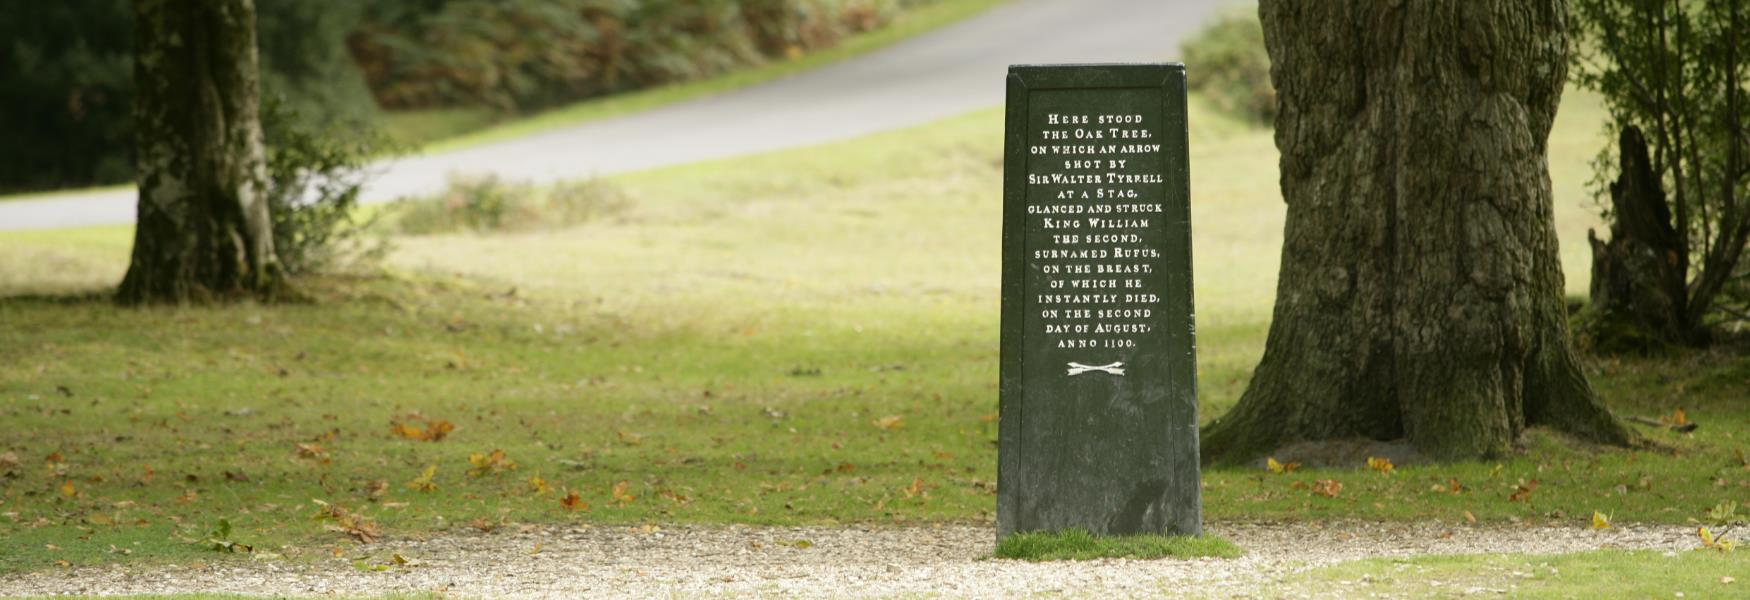 the rufus stone history and heritage site in the new forest